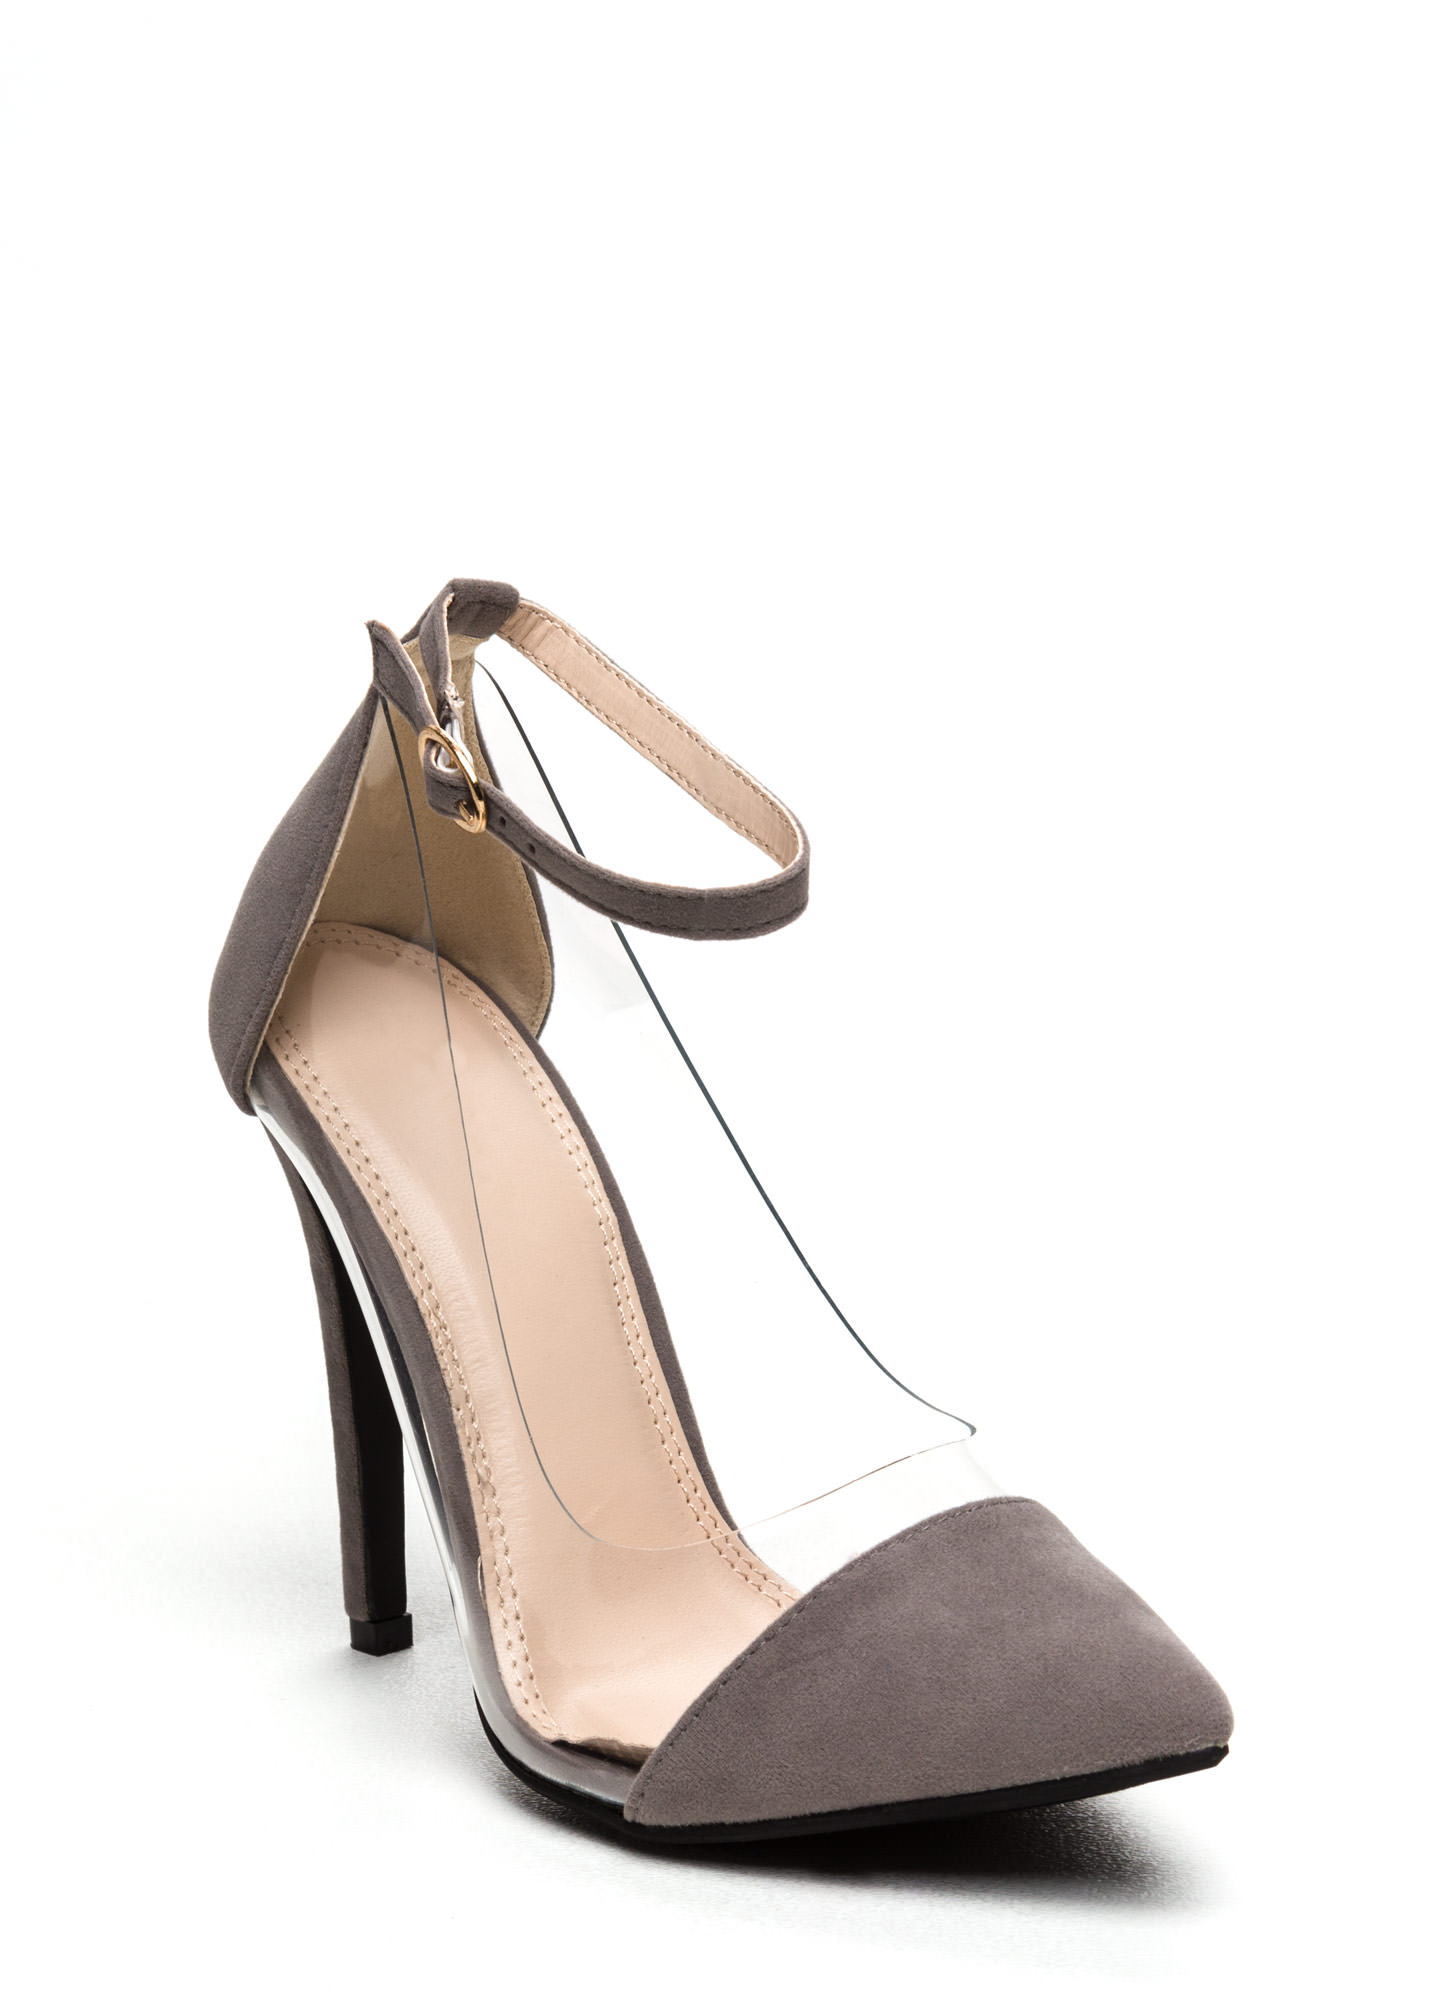 Show Some Skin Cap Toe Heels GREY